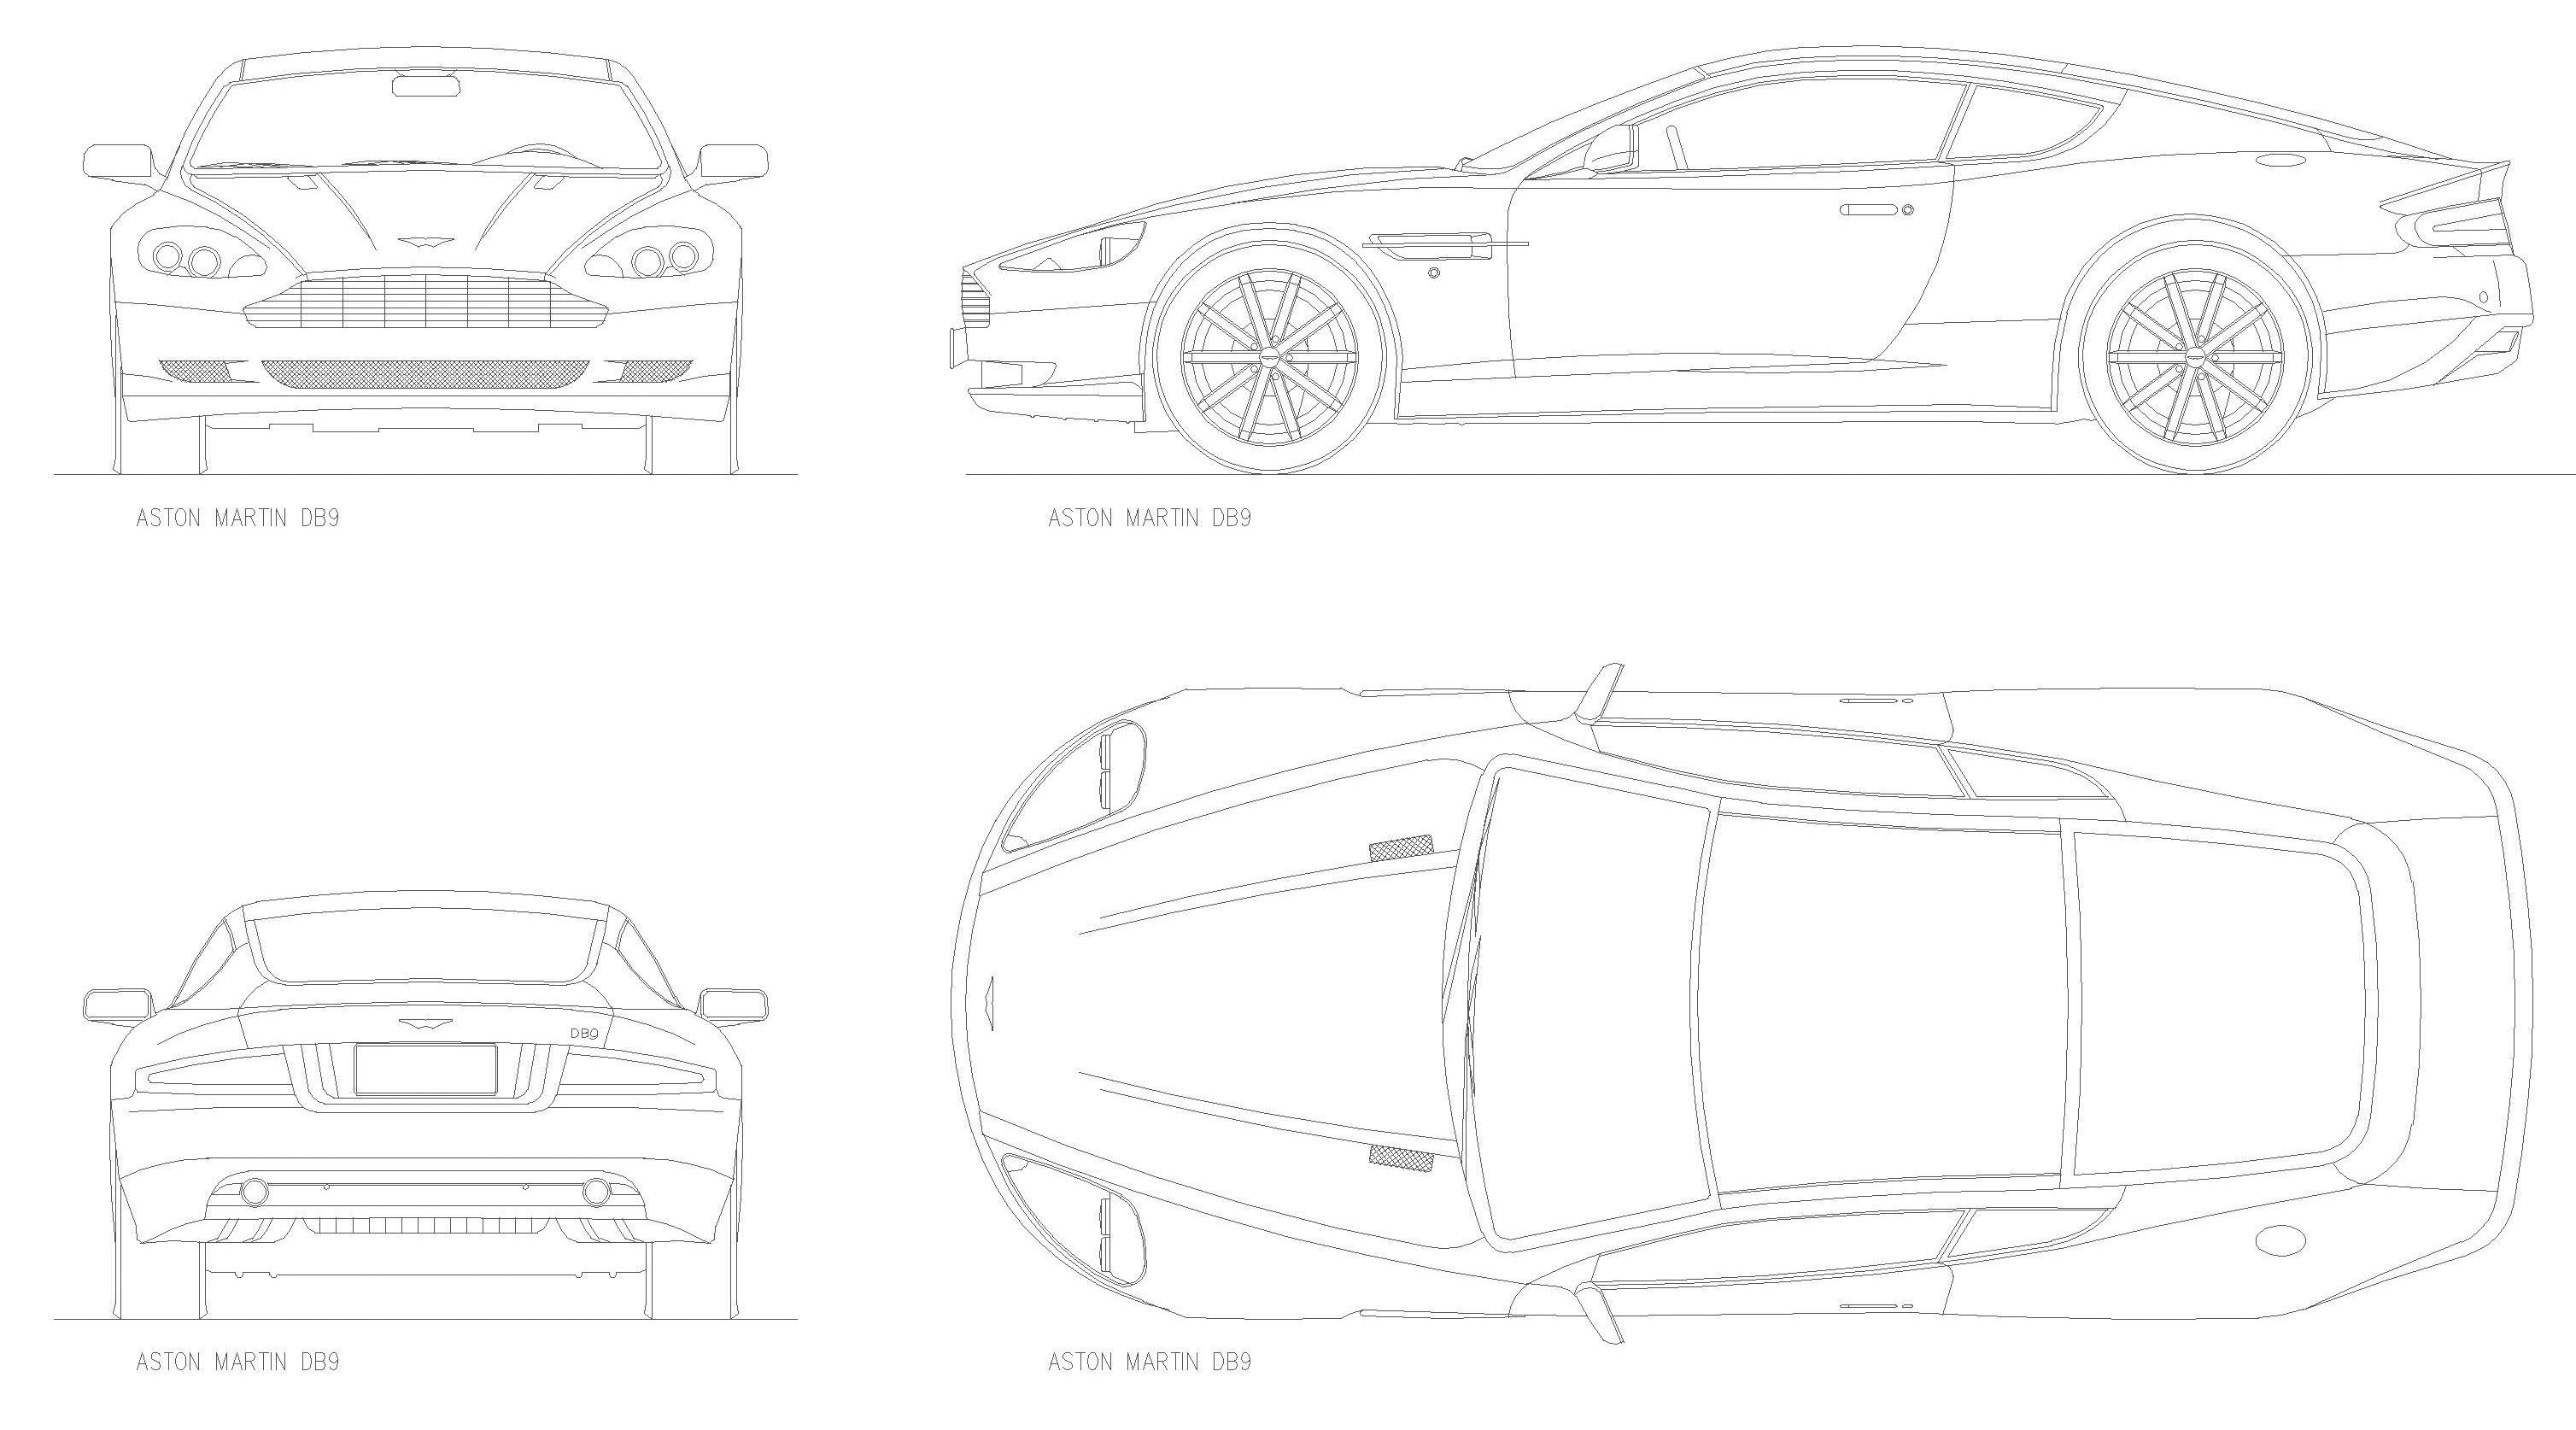 2008 Aston Martin Db9 Coupe Blueprints Free Outlines